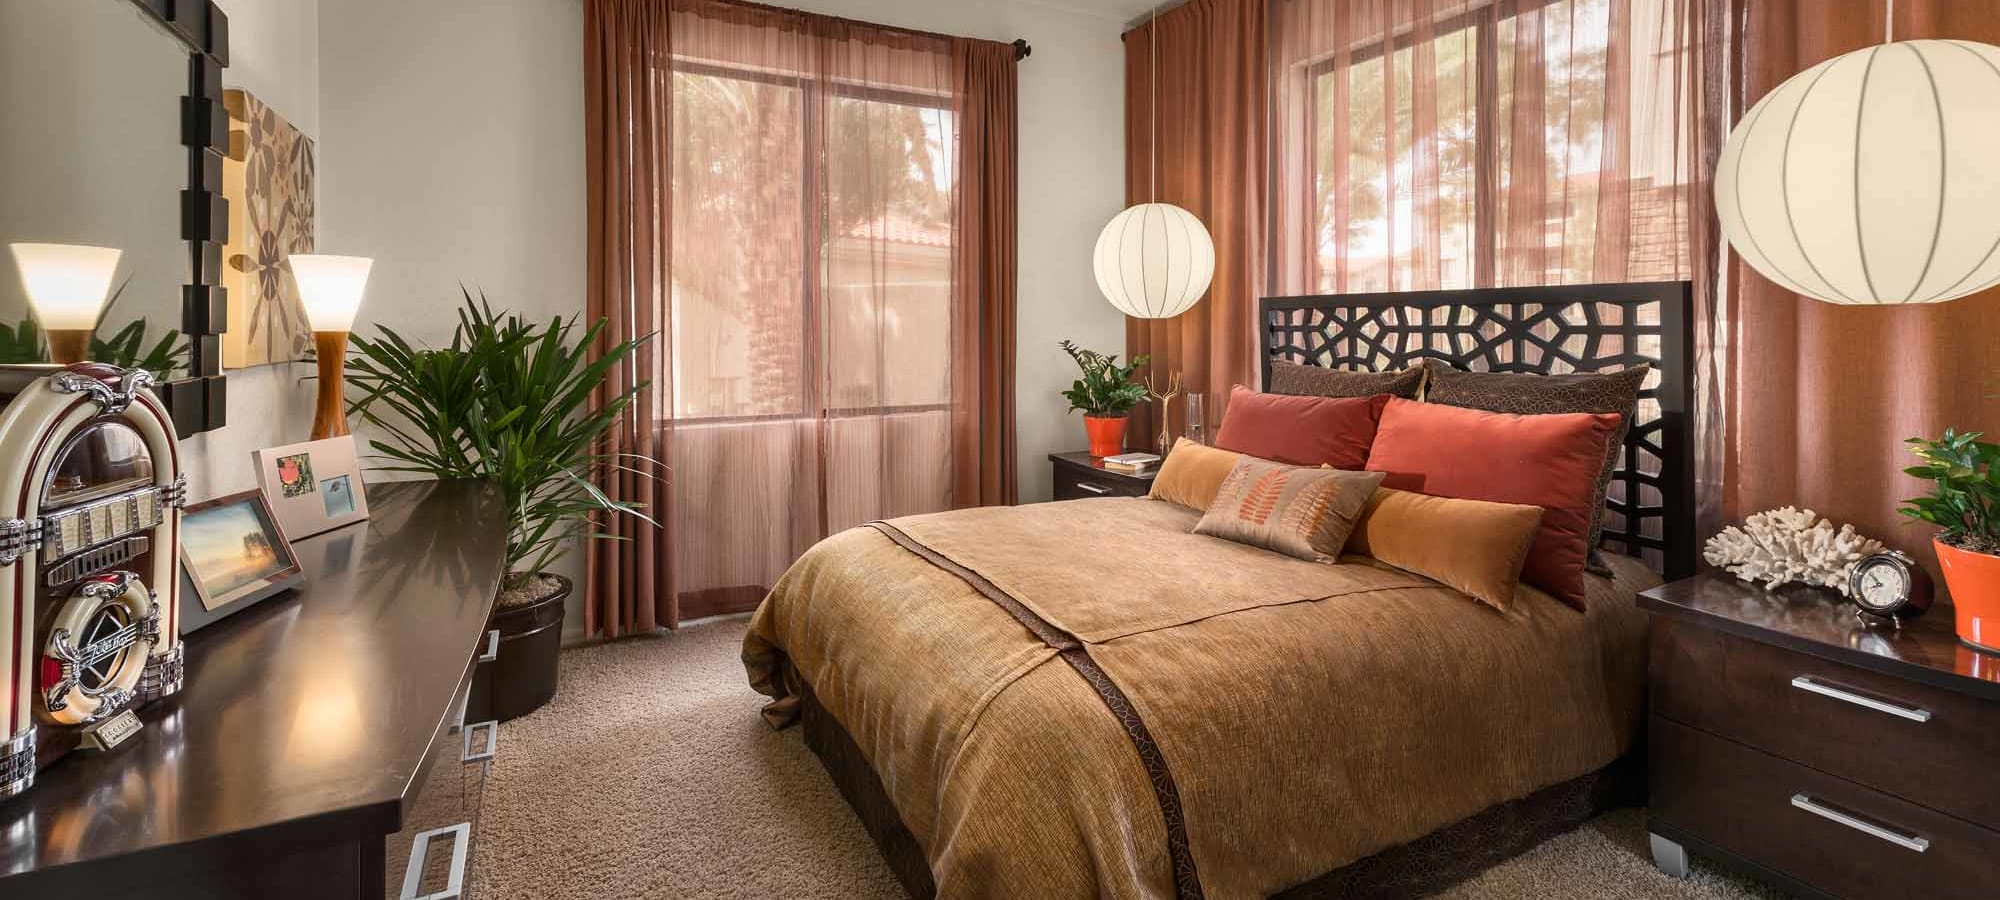 Guest bedroom in model home at San Marbeya in Tempe, Arizona